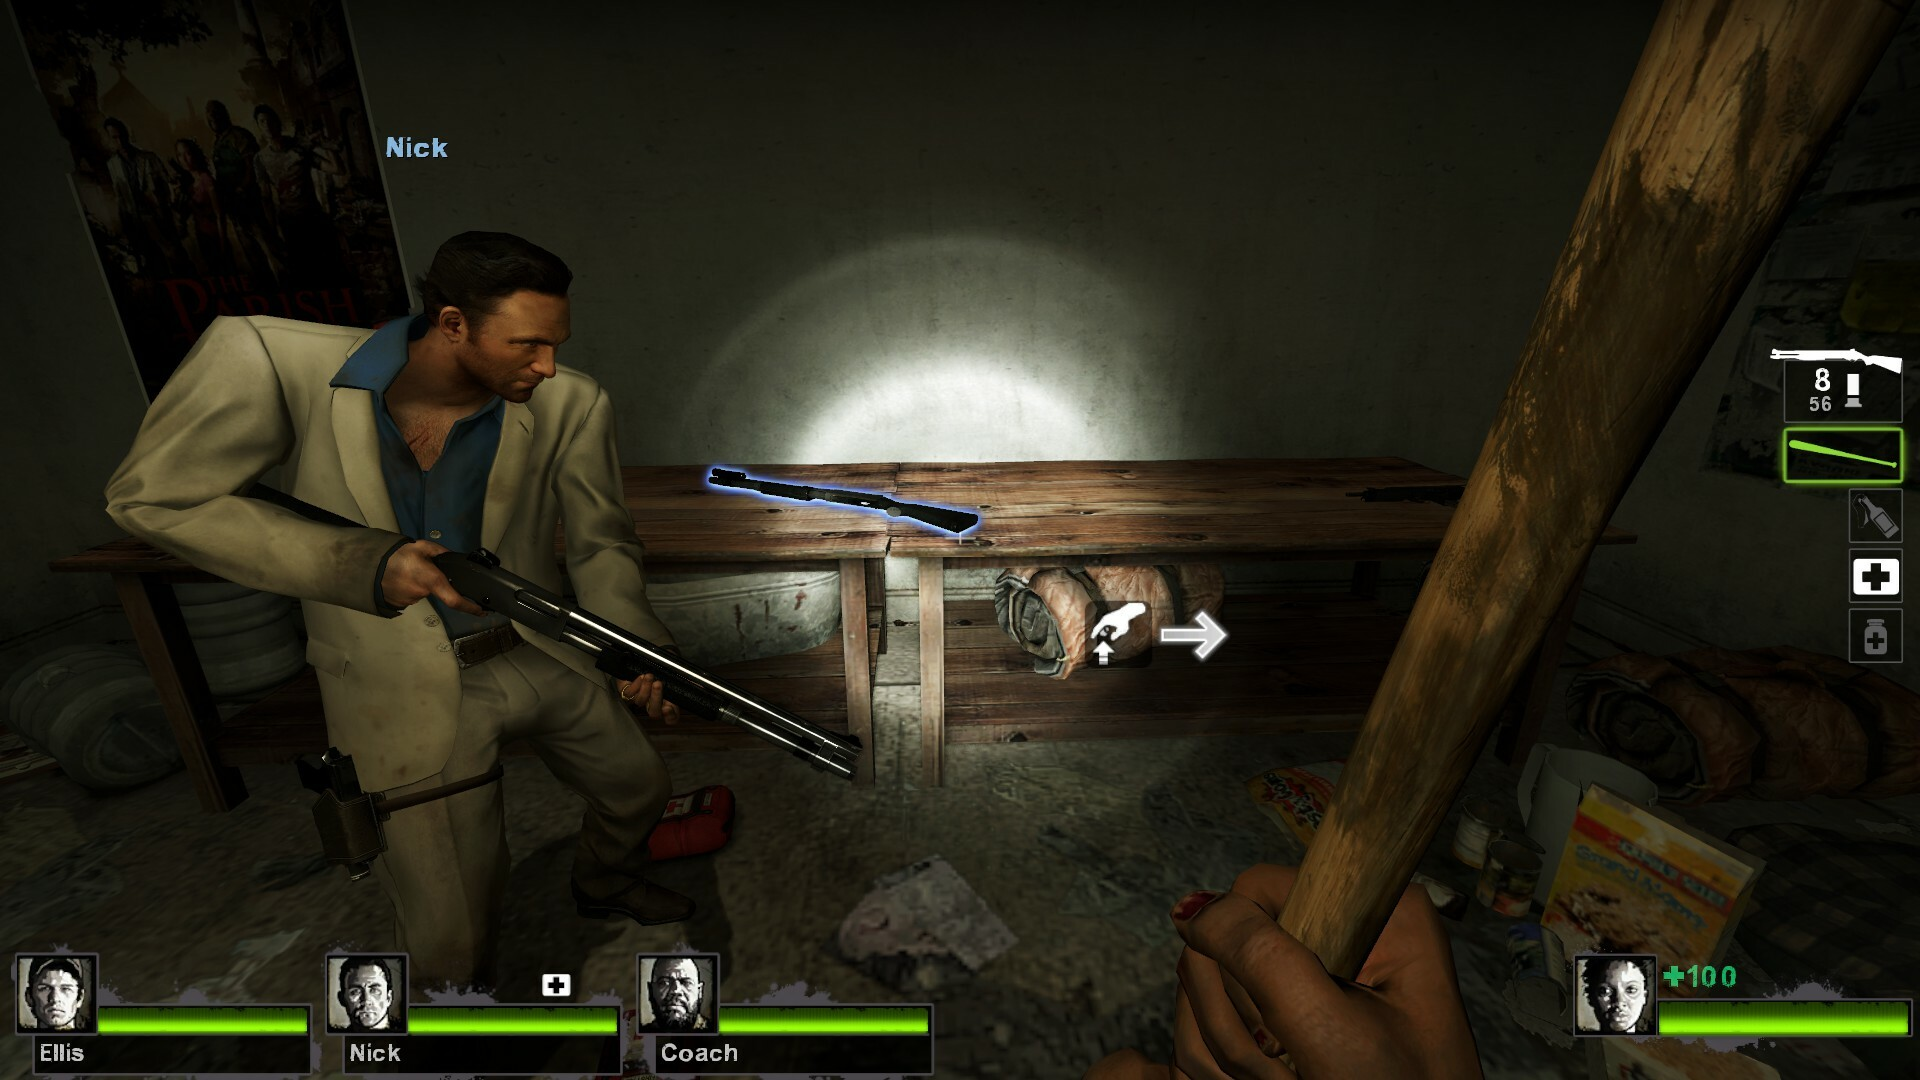 The first safe house has low tier weapons for the player and limited resources.